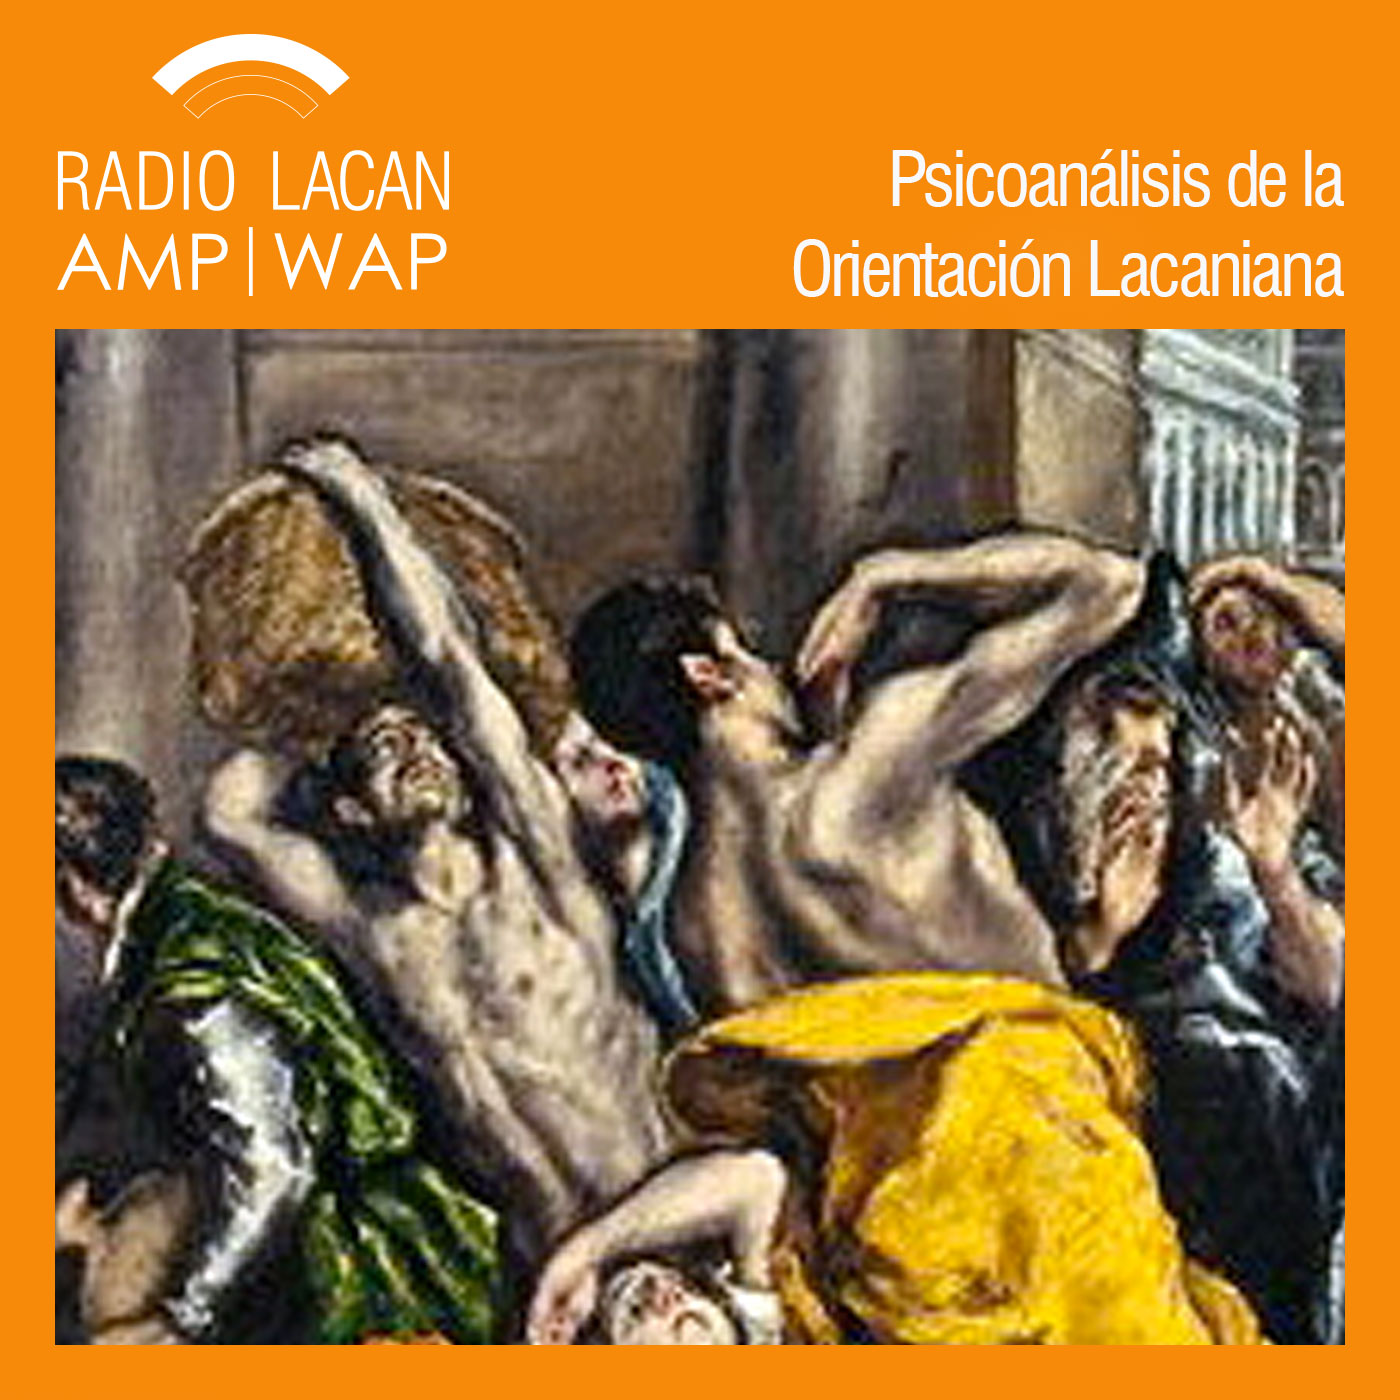 RadioLacan.com | <![CDATA[Radio Lacan in PIPOL 7. Series Echoes of Brussels: PIPOL7. Series Victims and Executioners]]>